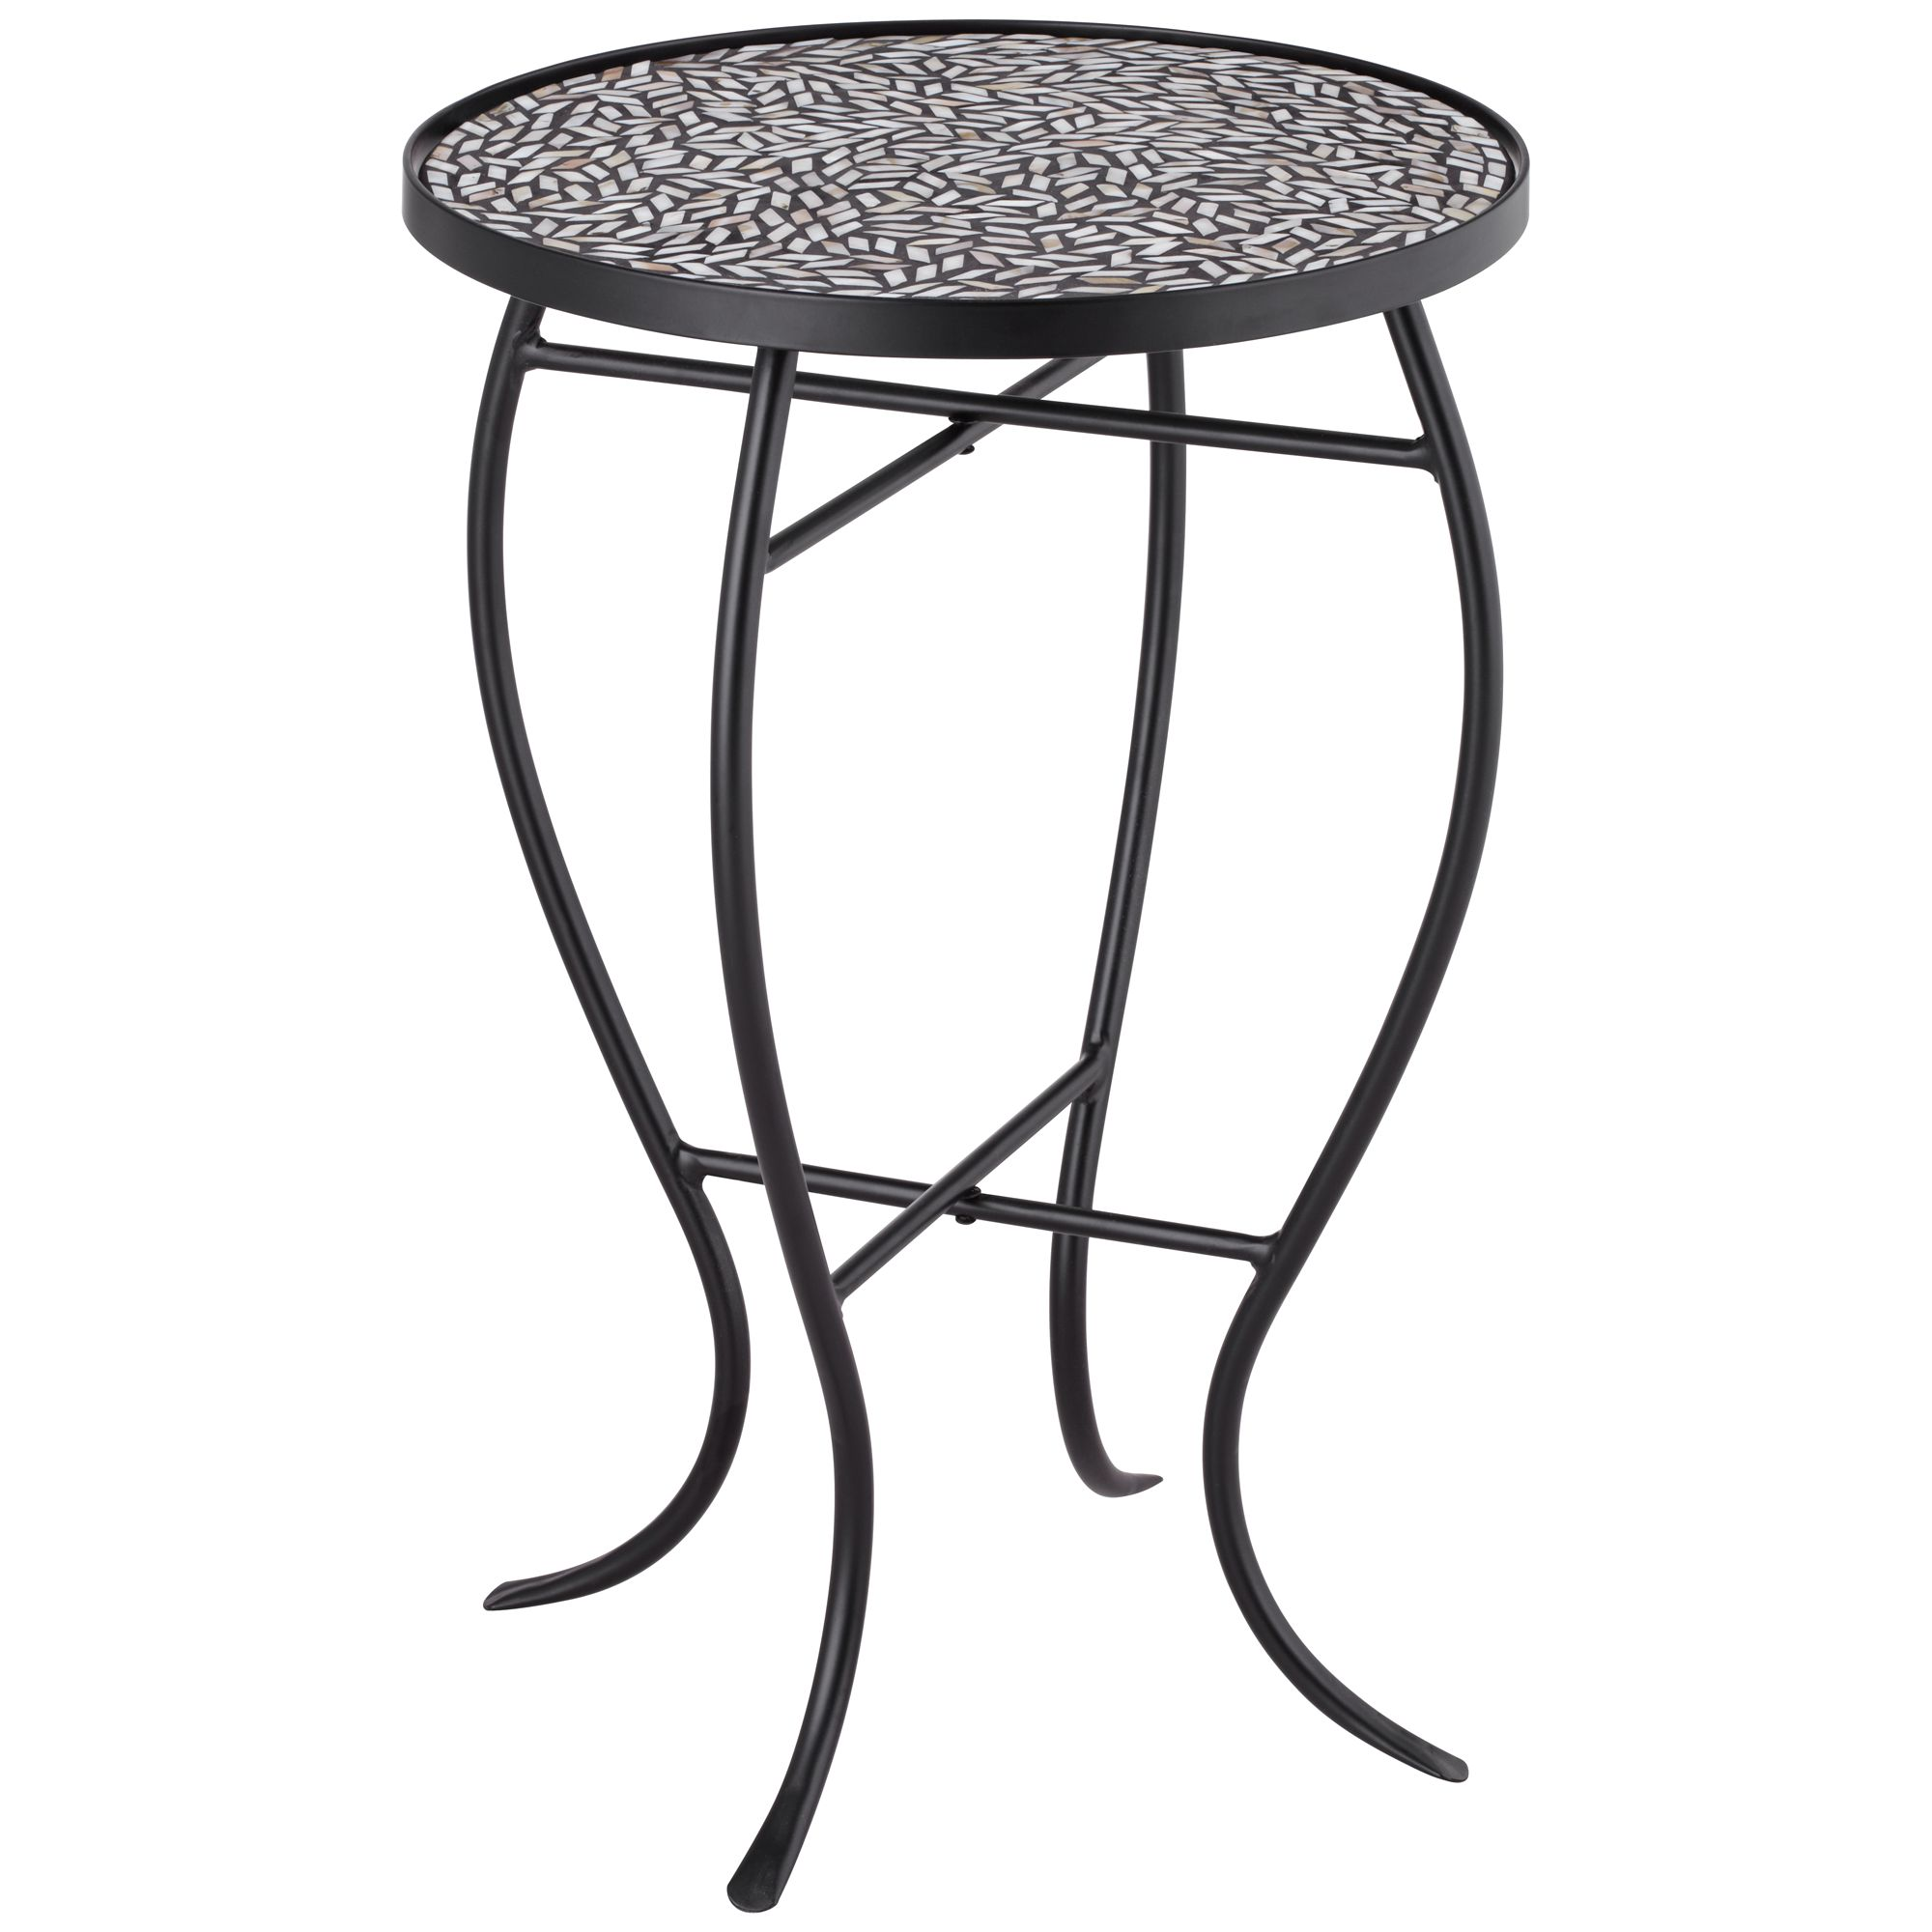 teal island designs zaltana mosaic outdoor accent table types furniture victorian coffee raw wood side contemporary trestle dining oval tablecloth large umbrellas black gloss